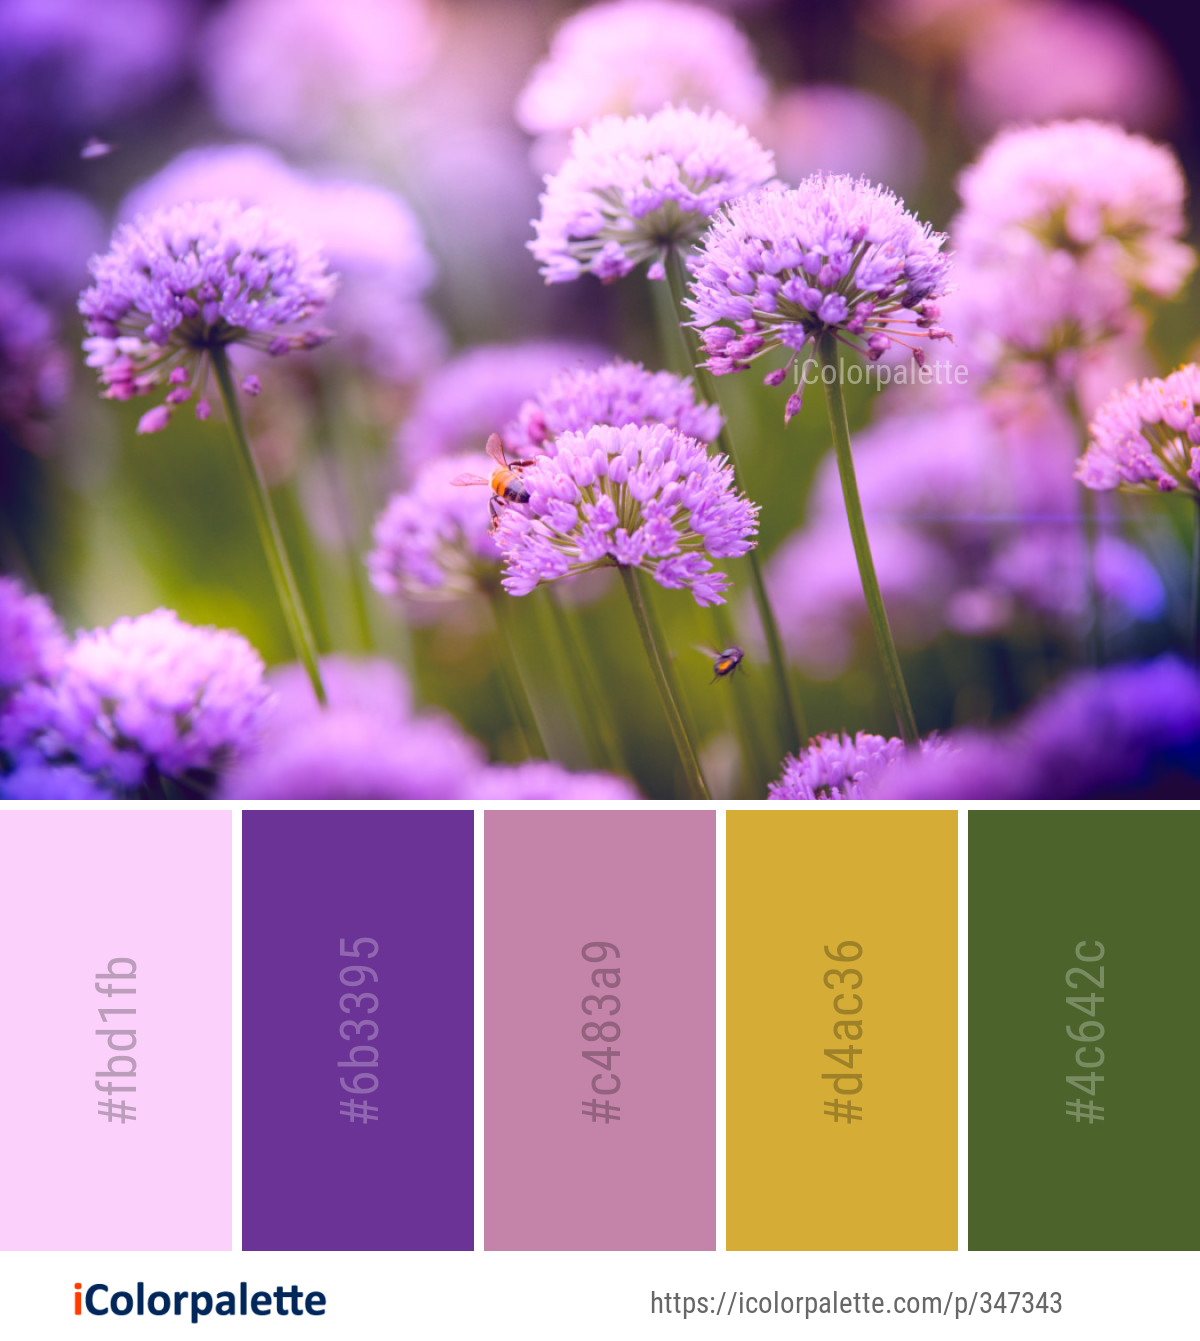 20753 Flower Color Palette Ideas In 2020 Icolorpalette